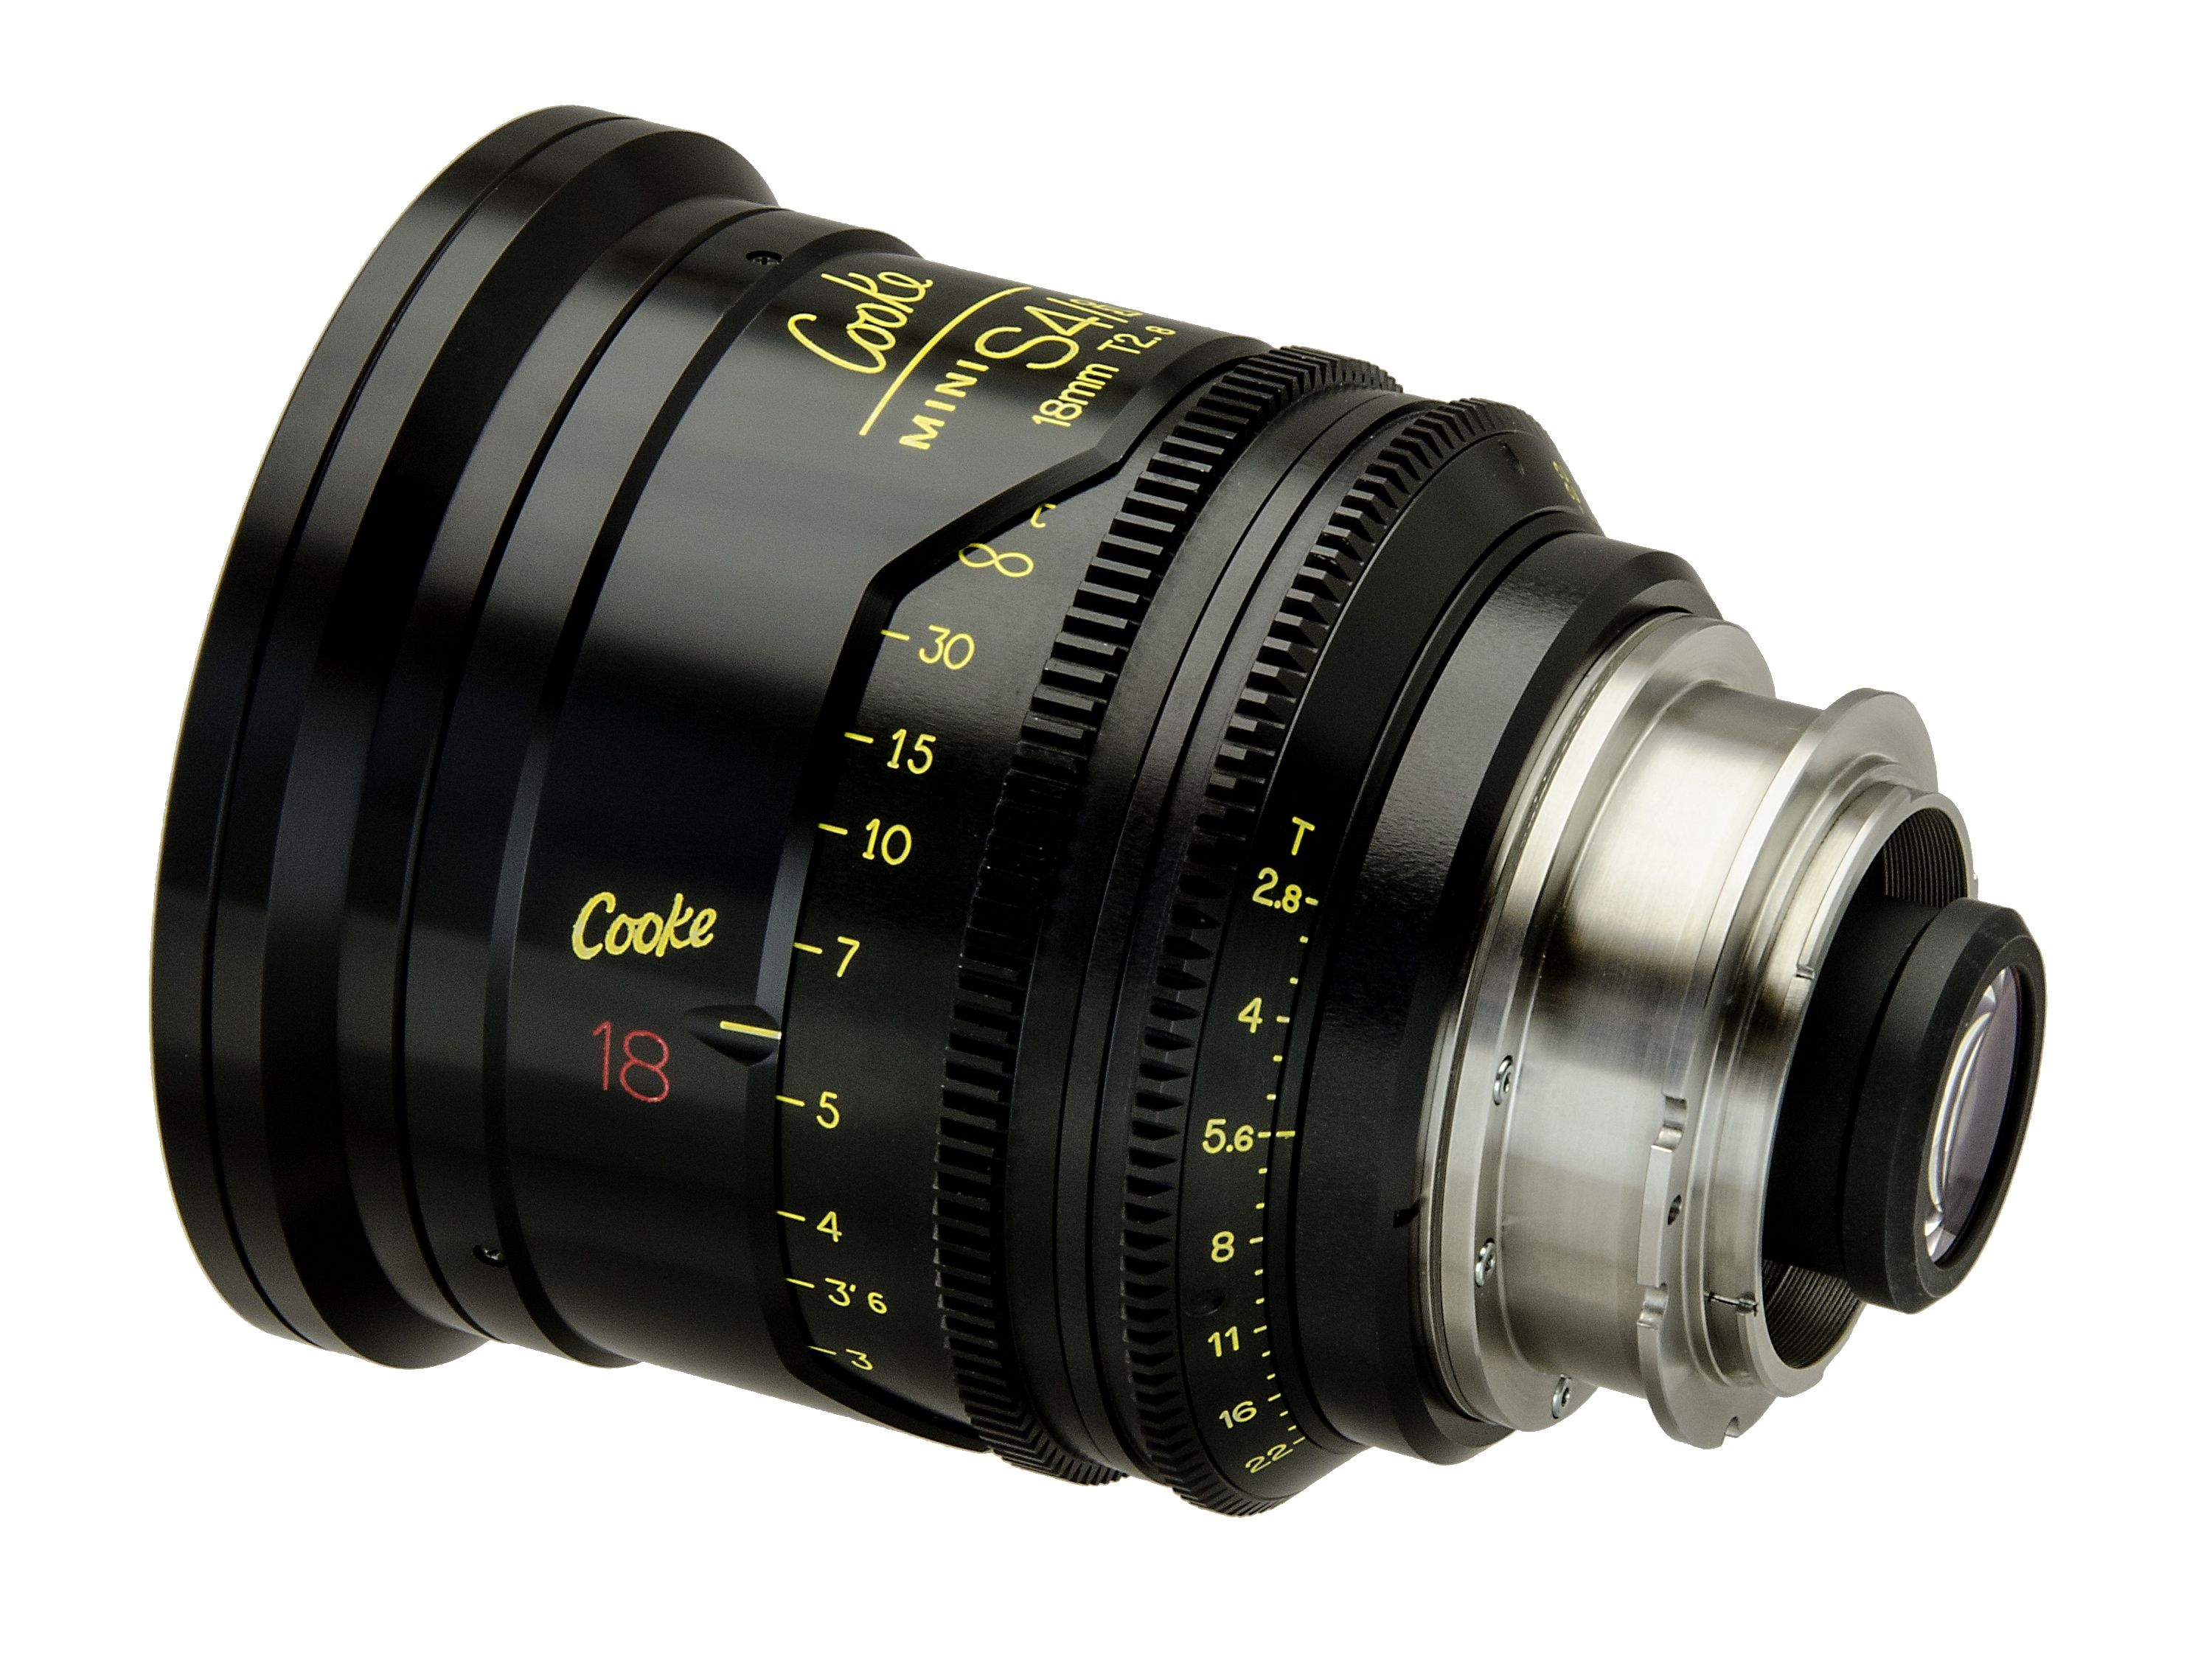 Cooke Optics Introduces Multiple Mounts For Minis4 I Lens Range Http Alcaudullo Com Cooke Optics Introduces Multiple Mounts Mi Mirrorless Camera Dslr Optical